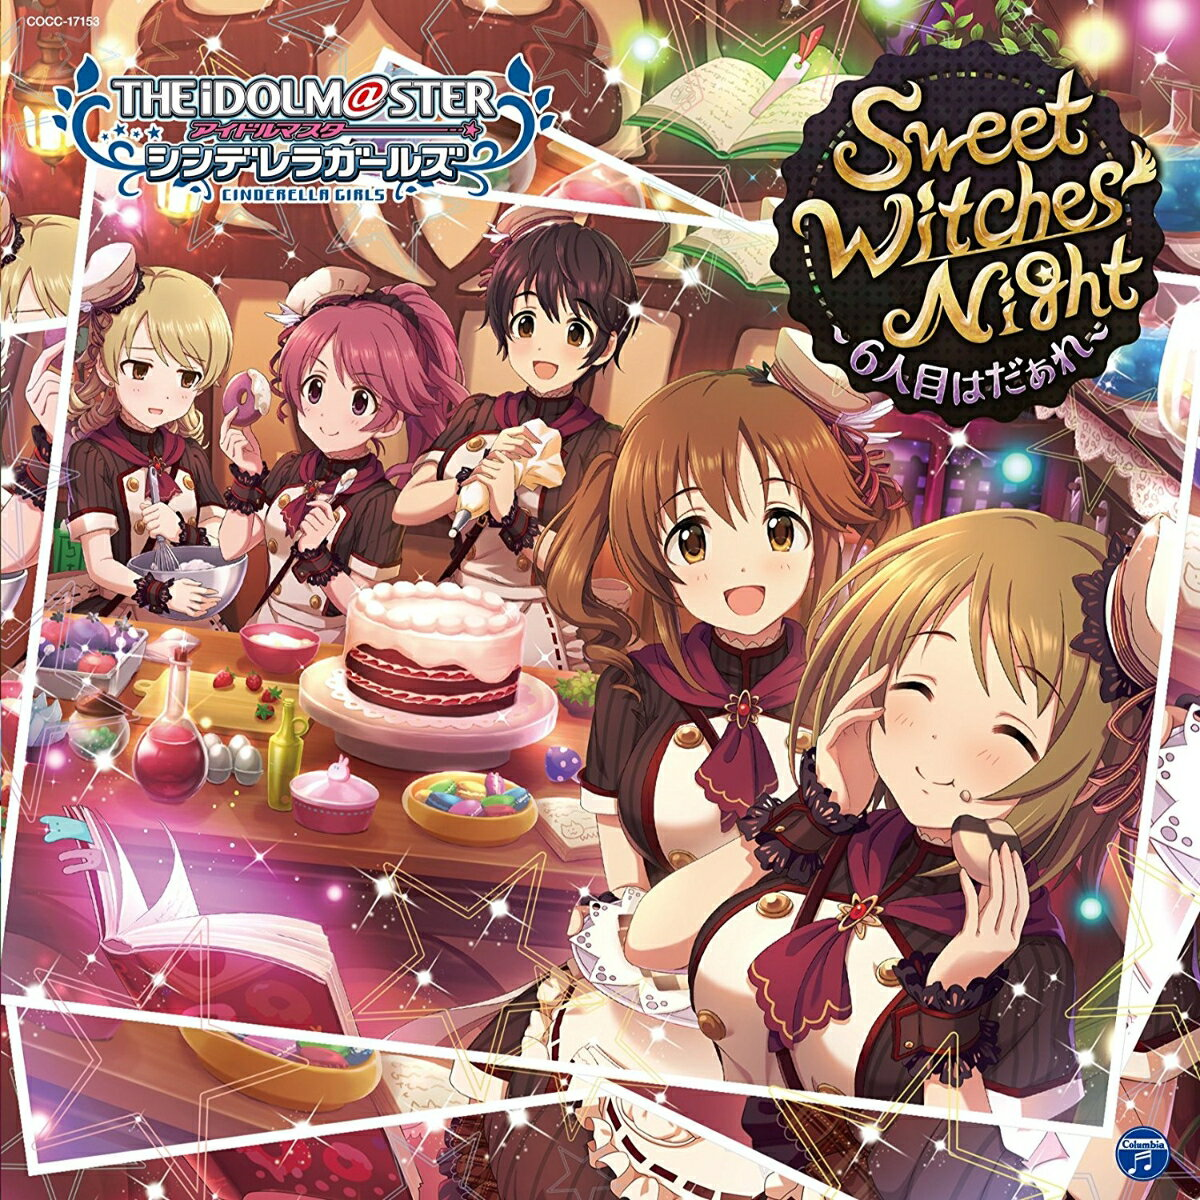 THE IDOLM@STER CINDERELLA GIRLS STARLIGHT MASTER 13 Sweet Witches' Night 〜6人目はだぁれ〜 [ (ゲーム・ミュージック) ]